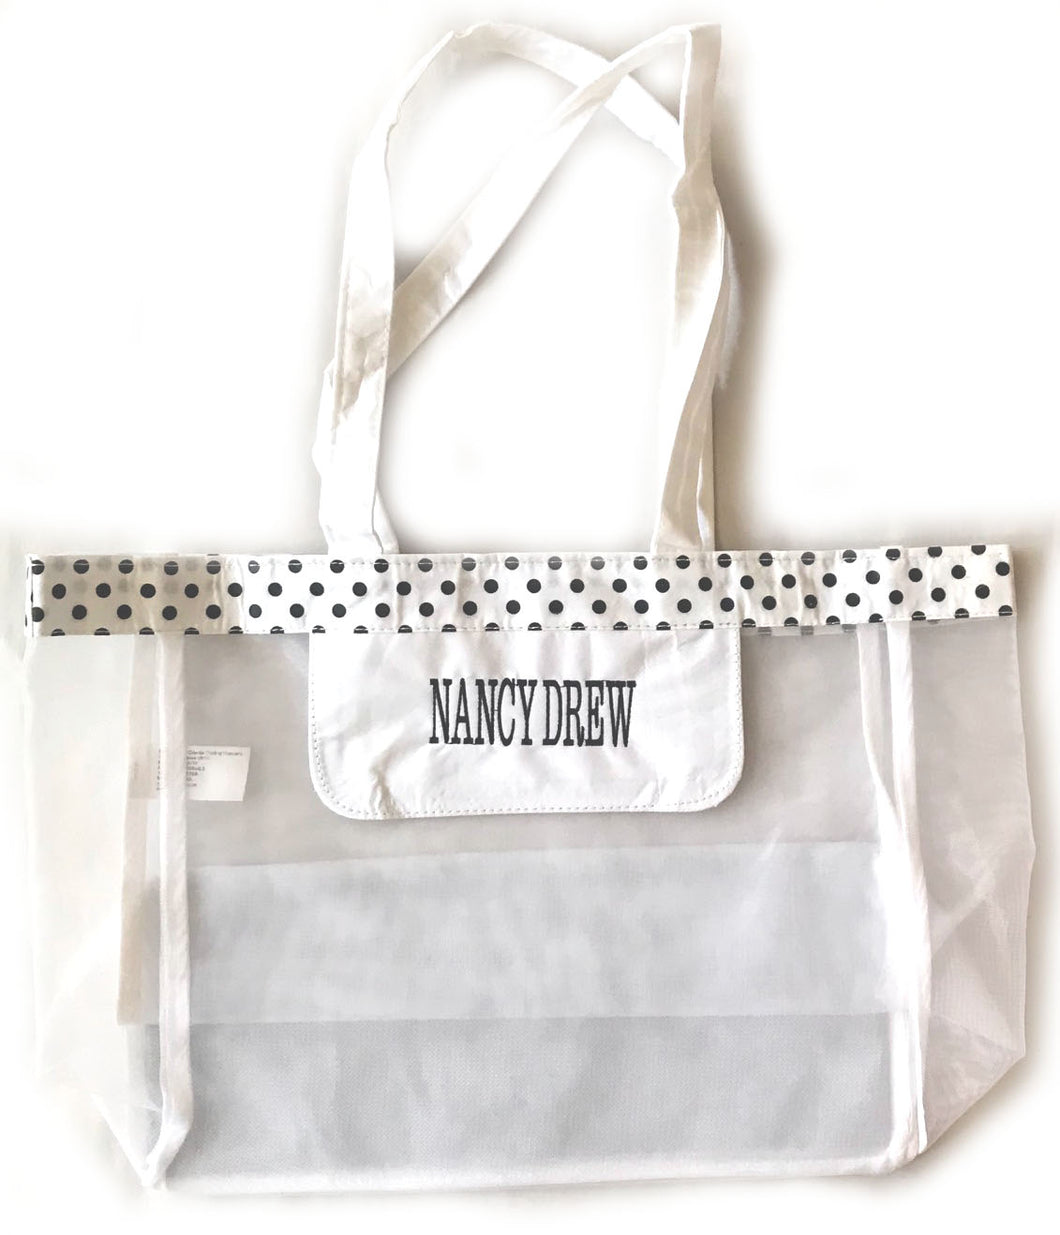 Nancy Drew White & Black Polka Dot Tote